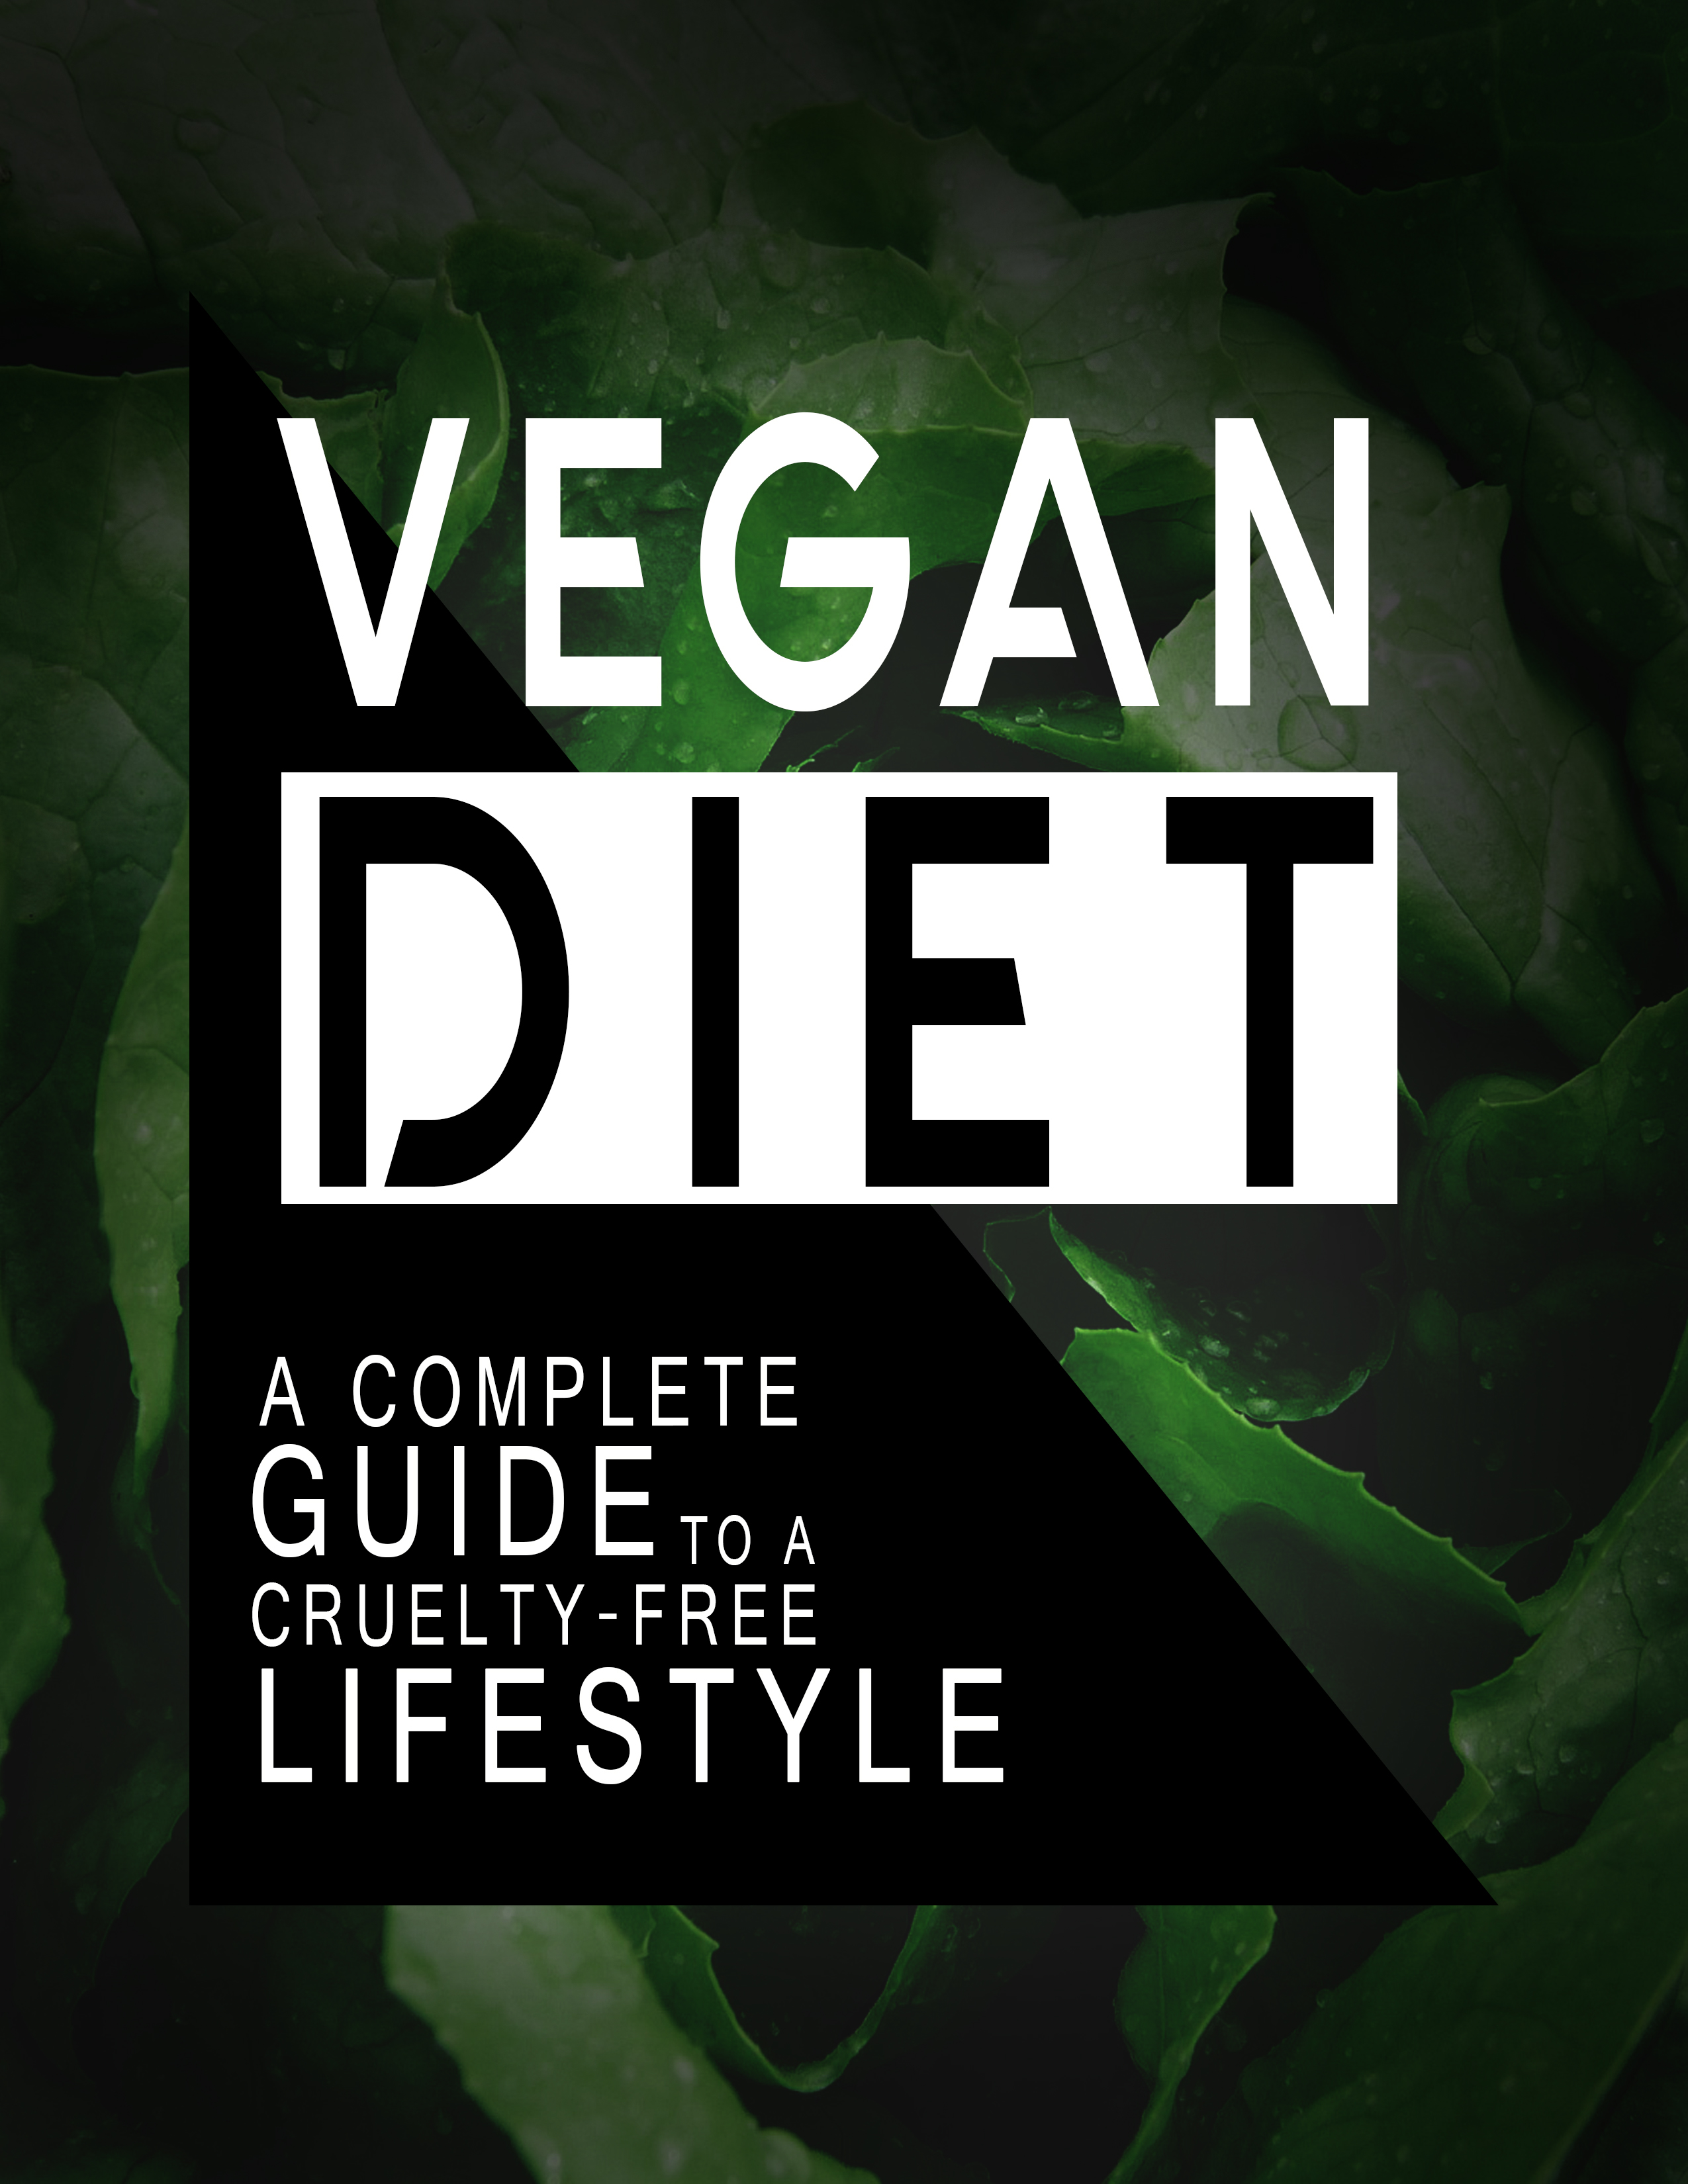 Vegan Diet (A Complete Guide to a Cruelty-Free Lifestyle) Ebook's Ebook Image